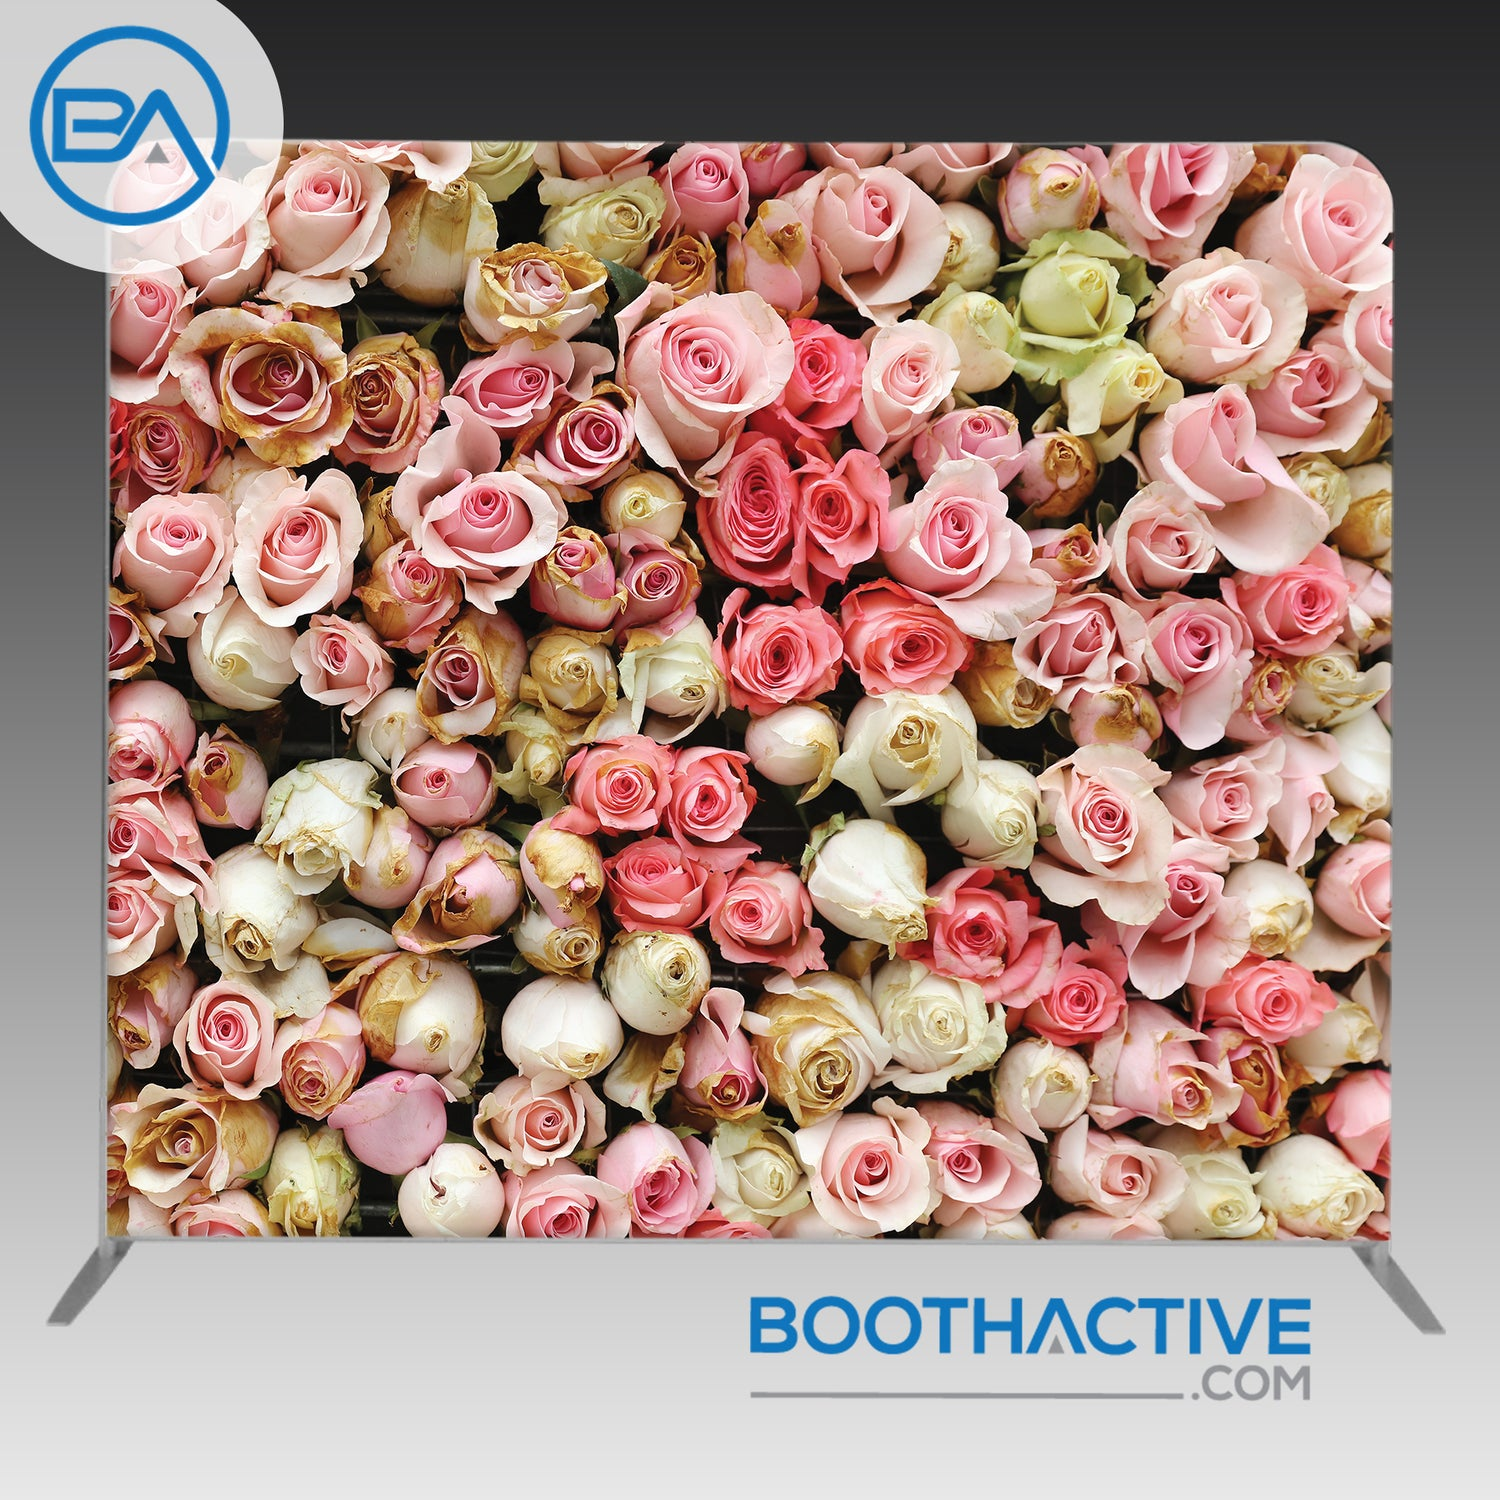 8' x 8' Backdrop - Rose Wall